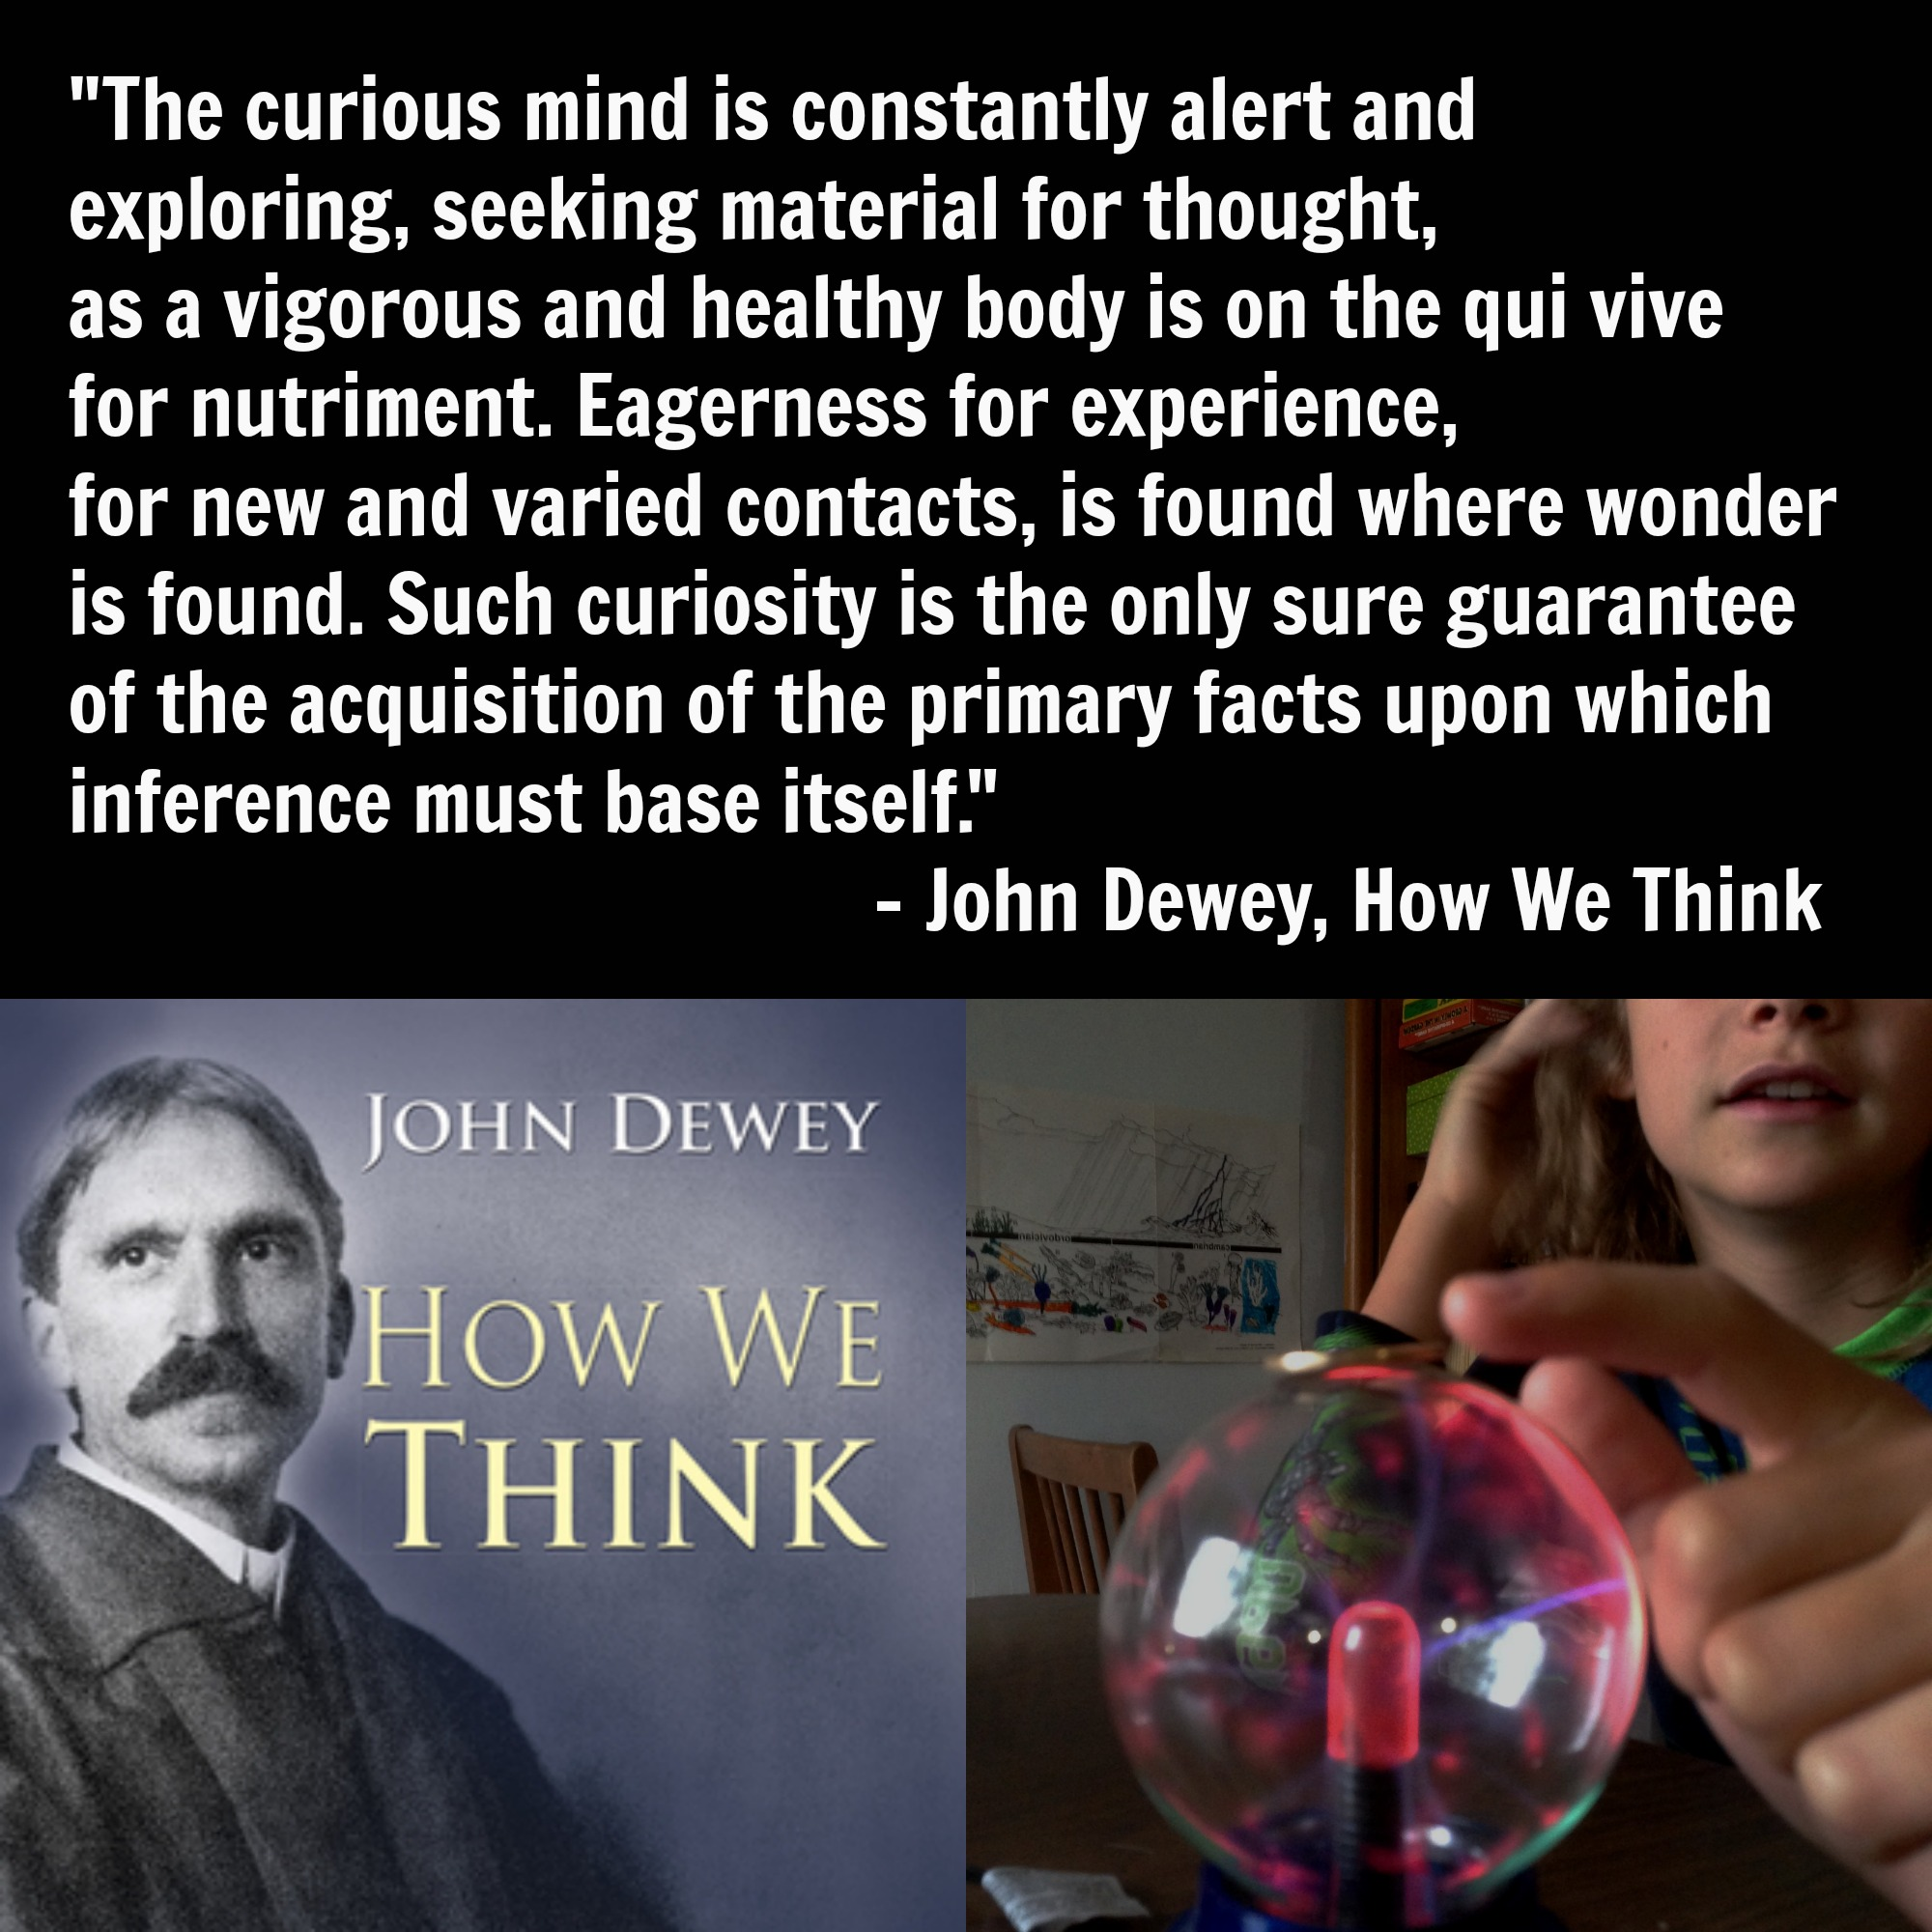 Curiosity Quotes Quote This John Dewey On The Curious Mind  Undogmatic Unschoolers